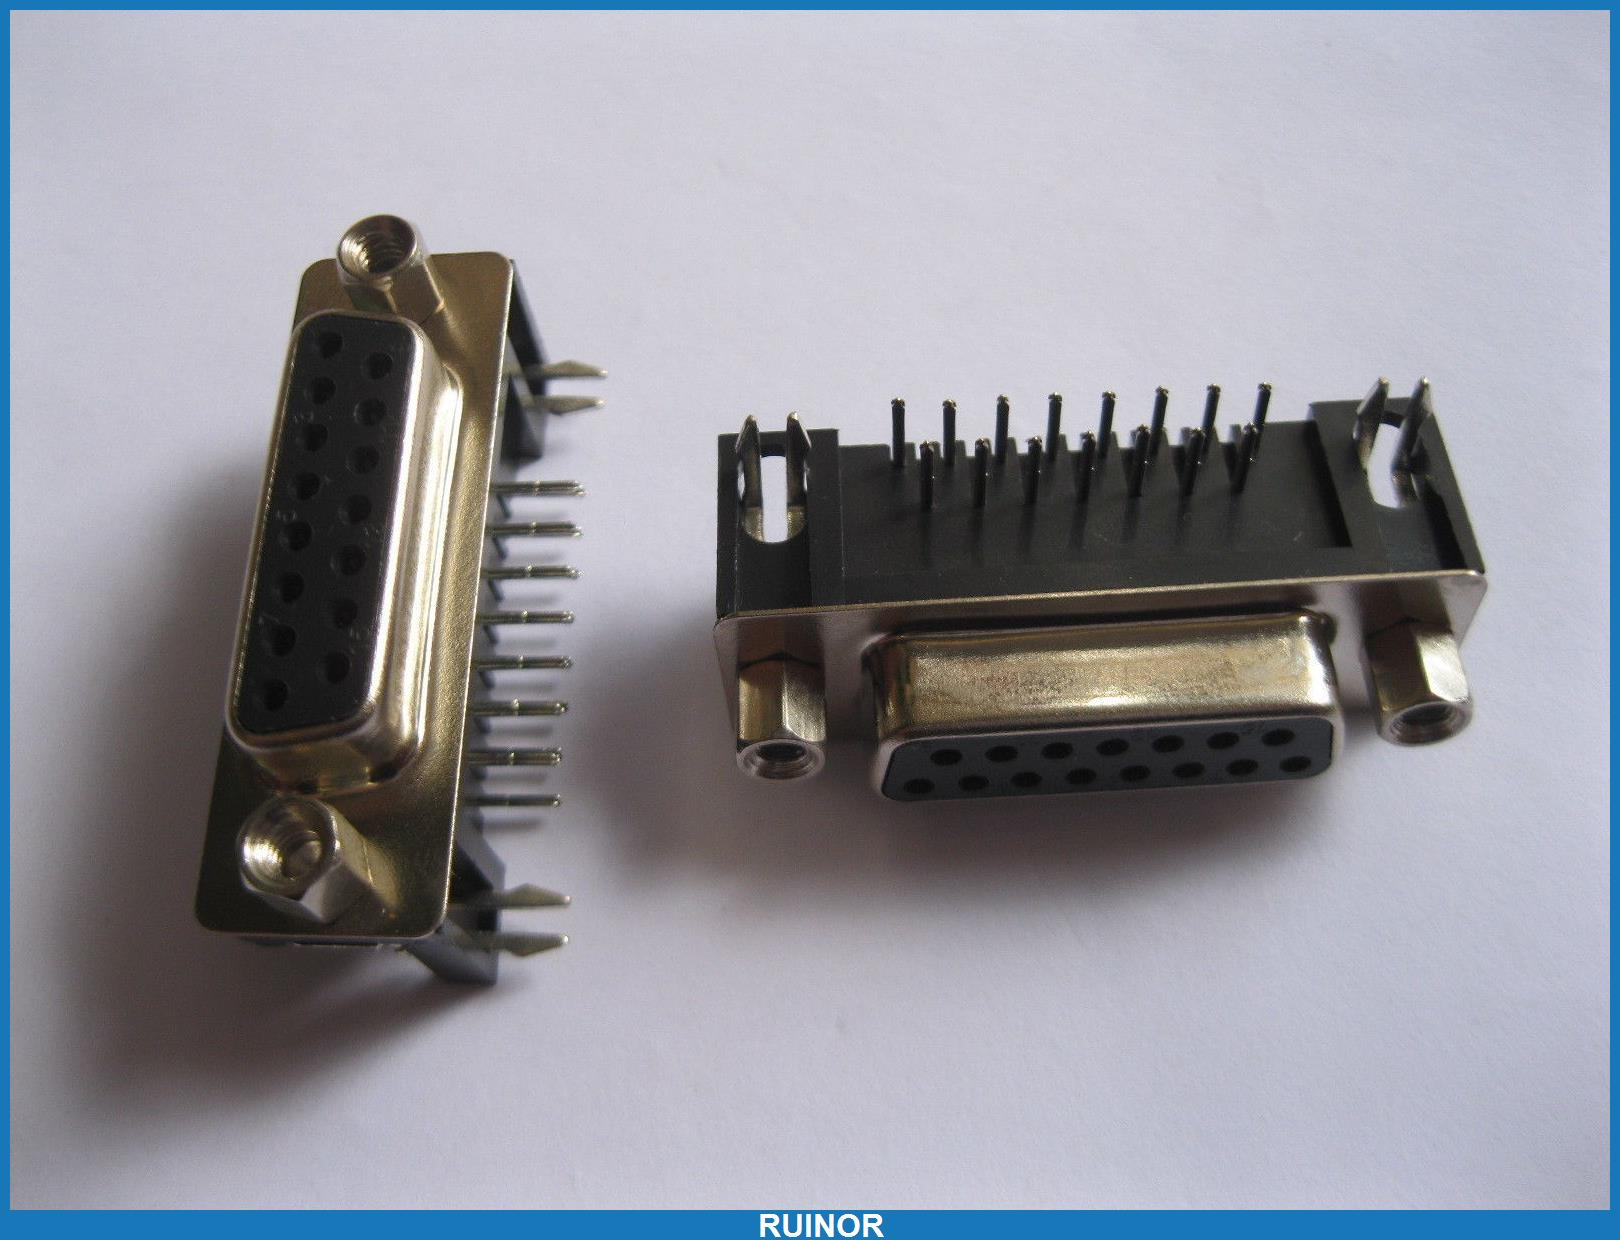 10 Pcs D Sub 15 Pin Female Connector Right Angle 2 Rows(China (Mainland))